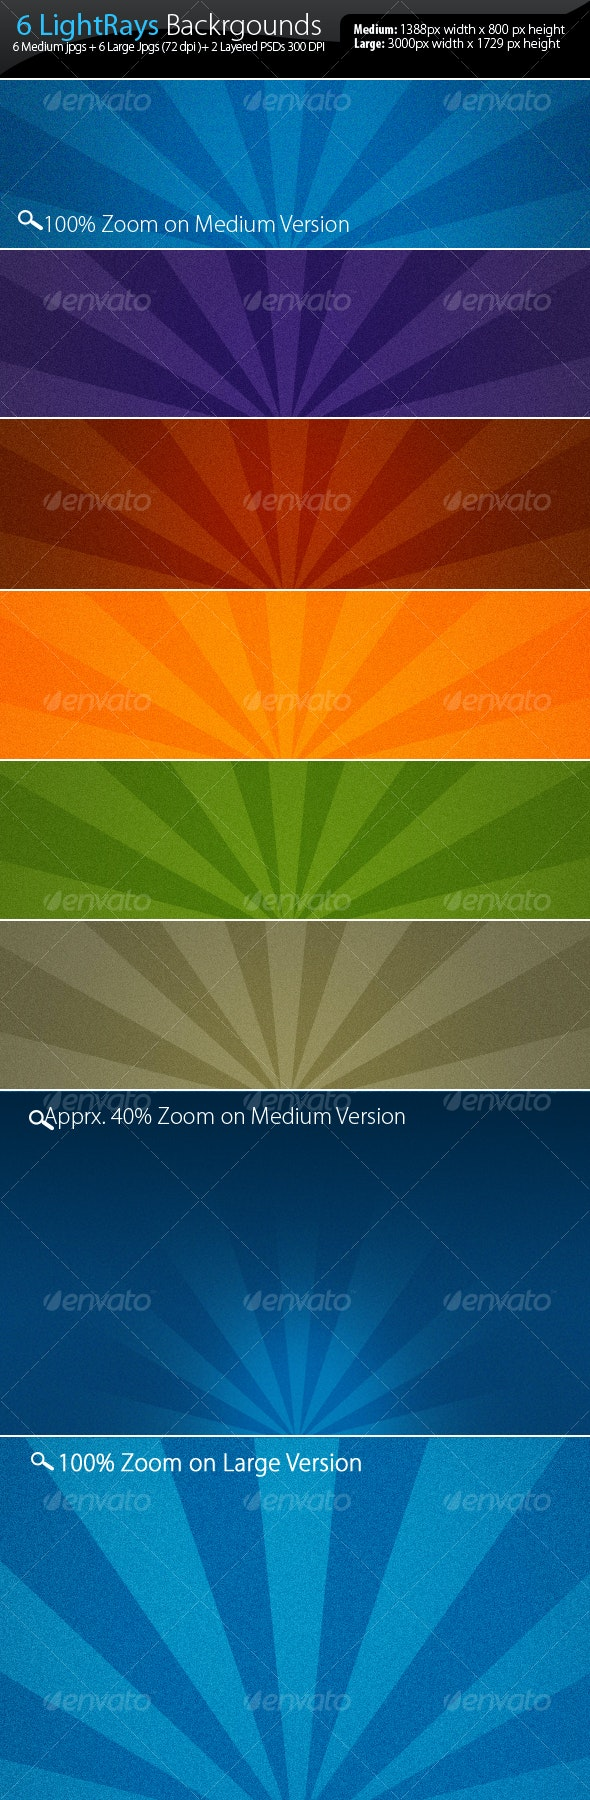 Cool Burst of Light Rays Background files - Abstract Backgrounds